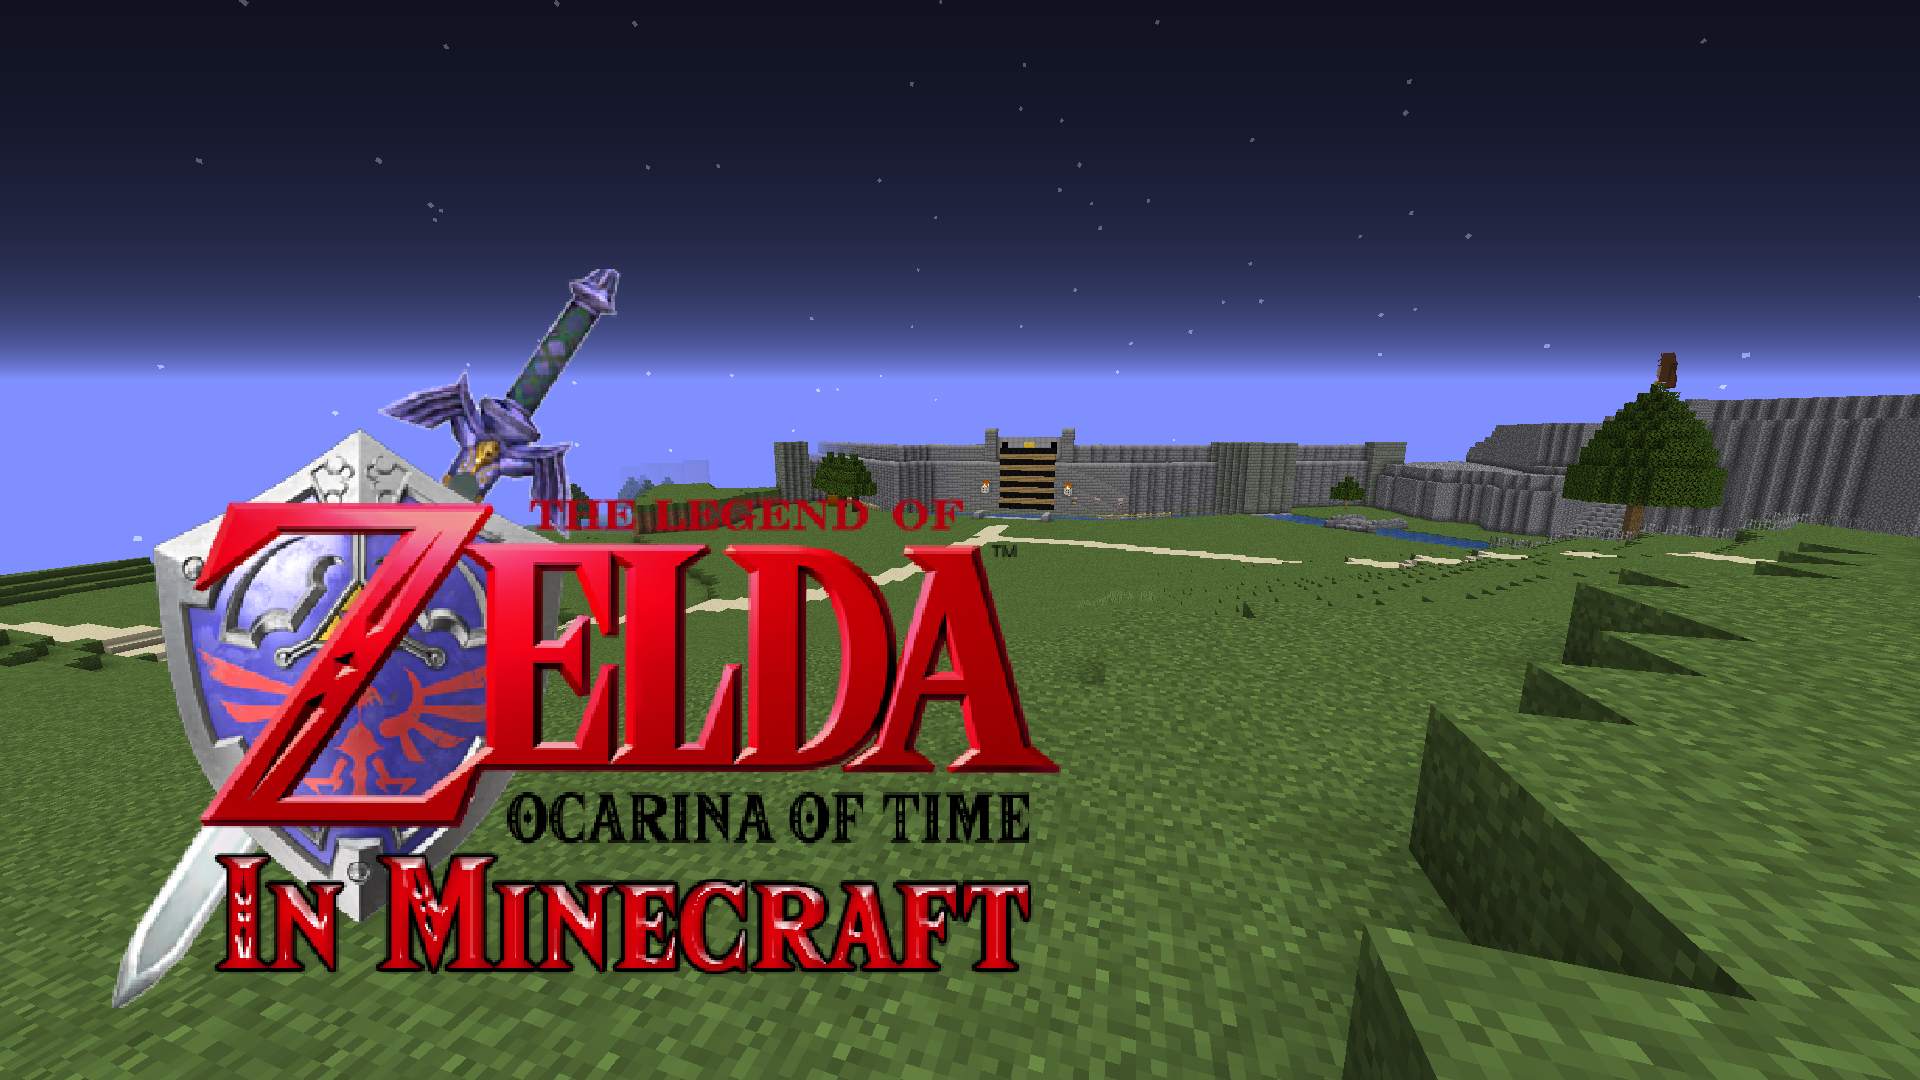 Download «The Legend of Zelda Ocarina of Time» map for Minecraft on minecraft candy map, minecraft star fox map, minecraft grand prix map, videos of minecraft cool map, minecraft inuyasha map, minecraft village seed 1.7.10, minecraft kokiri forest, link to the past dark world map, minecraft metroid prime map, minecraft xenoblade map, minecraft mods 1.7.10, minecraft adventure maps, isle o hags map, minecraft halo map, minecraft tekken map, minecraft boxing map, silent hill minecraft map, star trek minecraft map, minecraft fire emblem map, minecraft minecraft map,